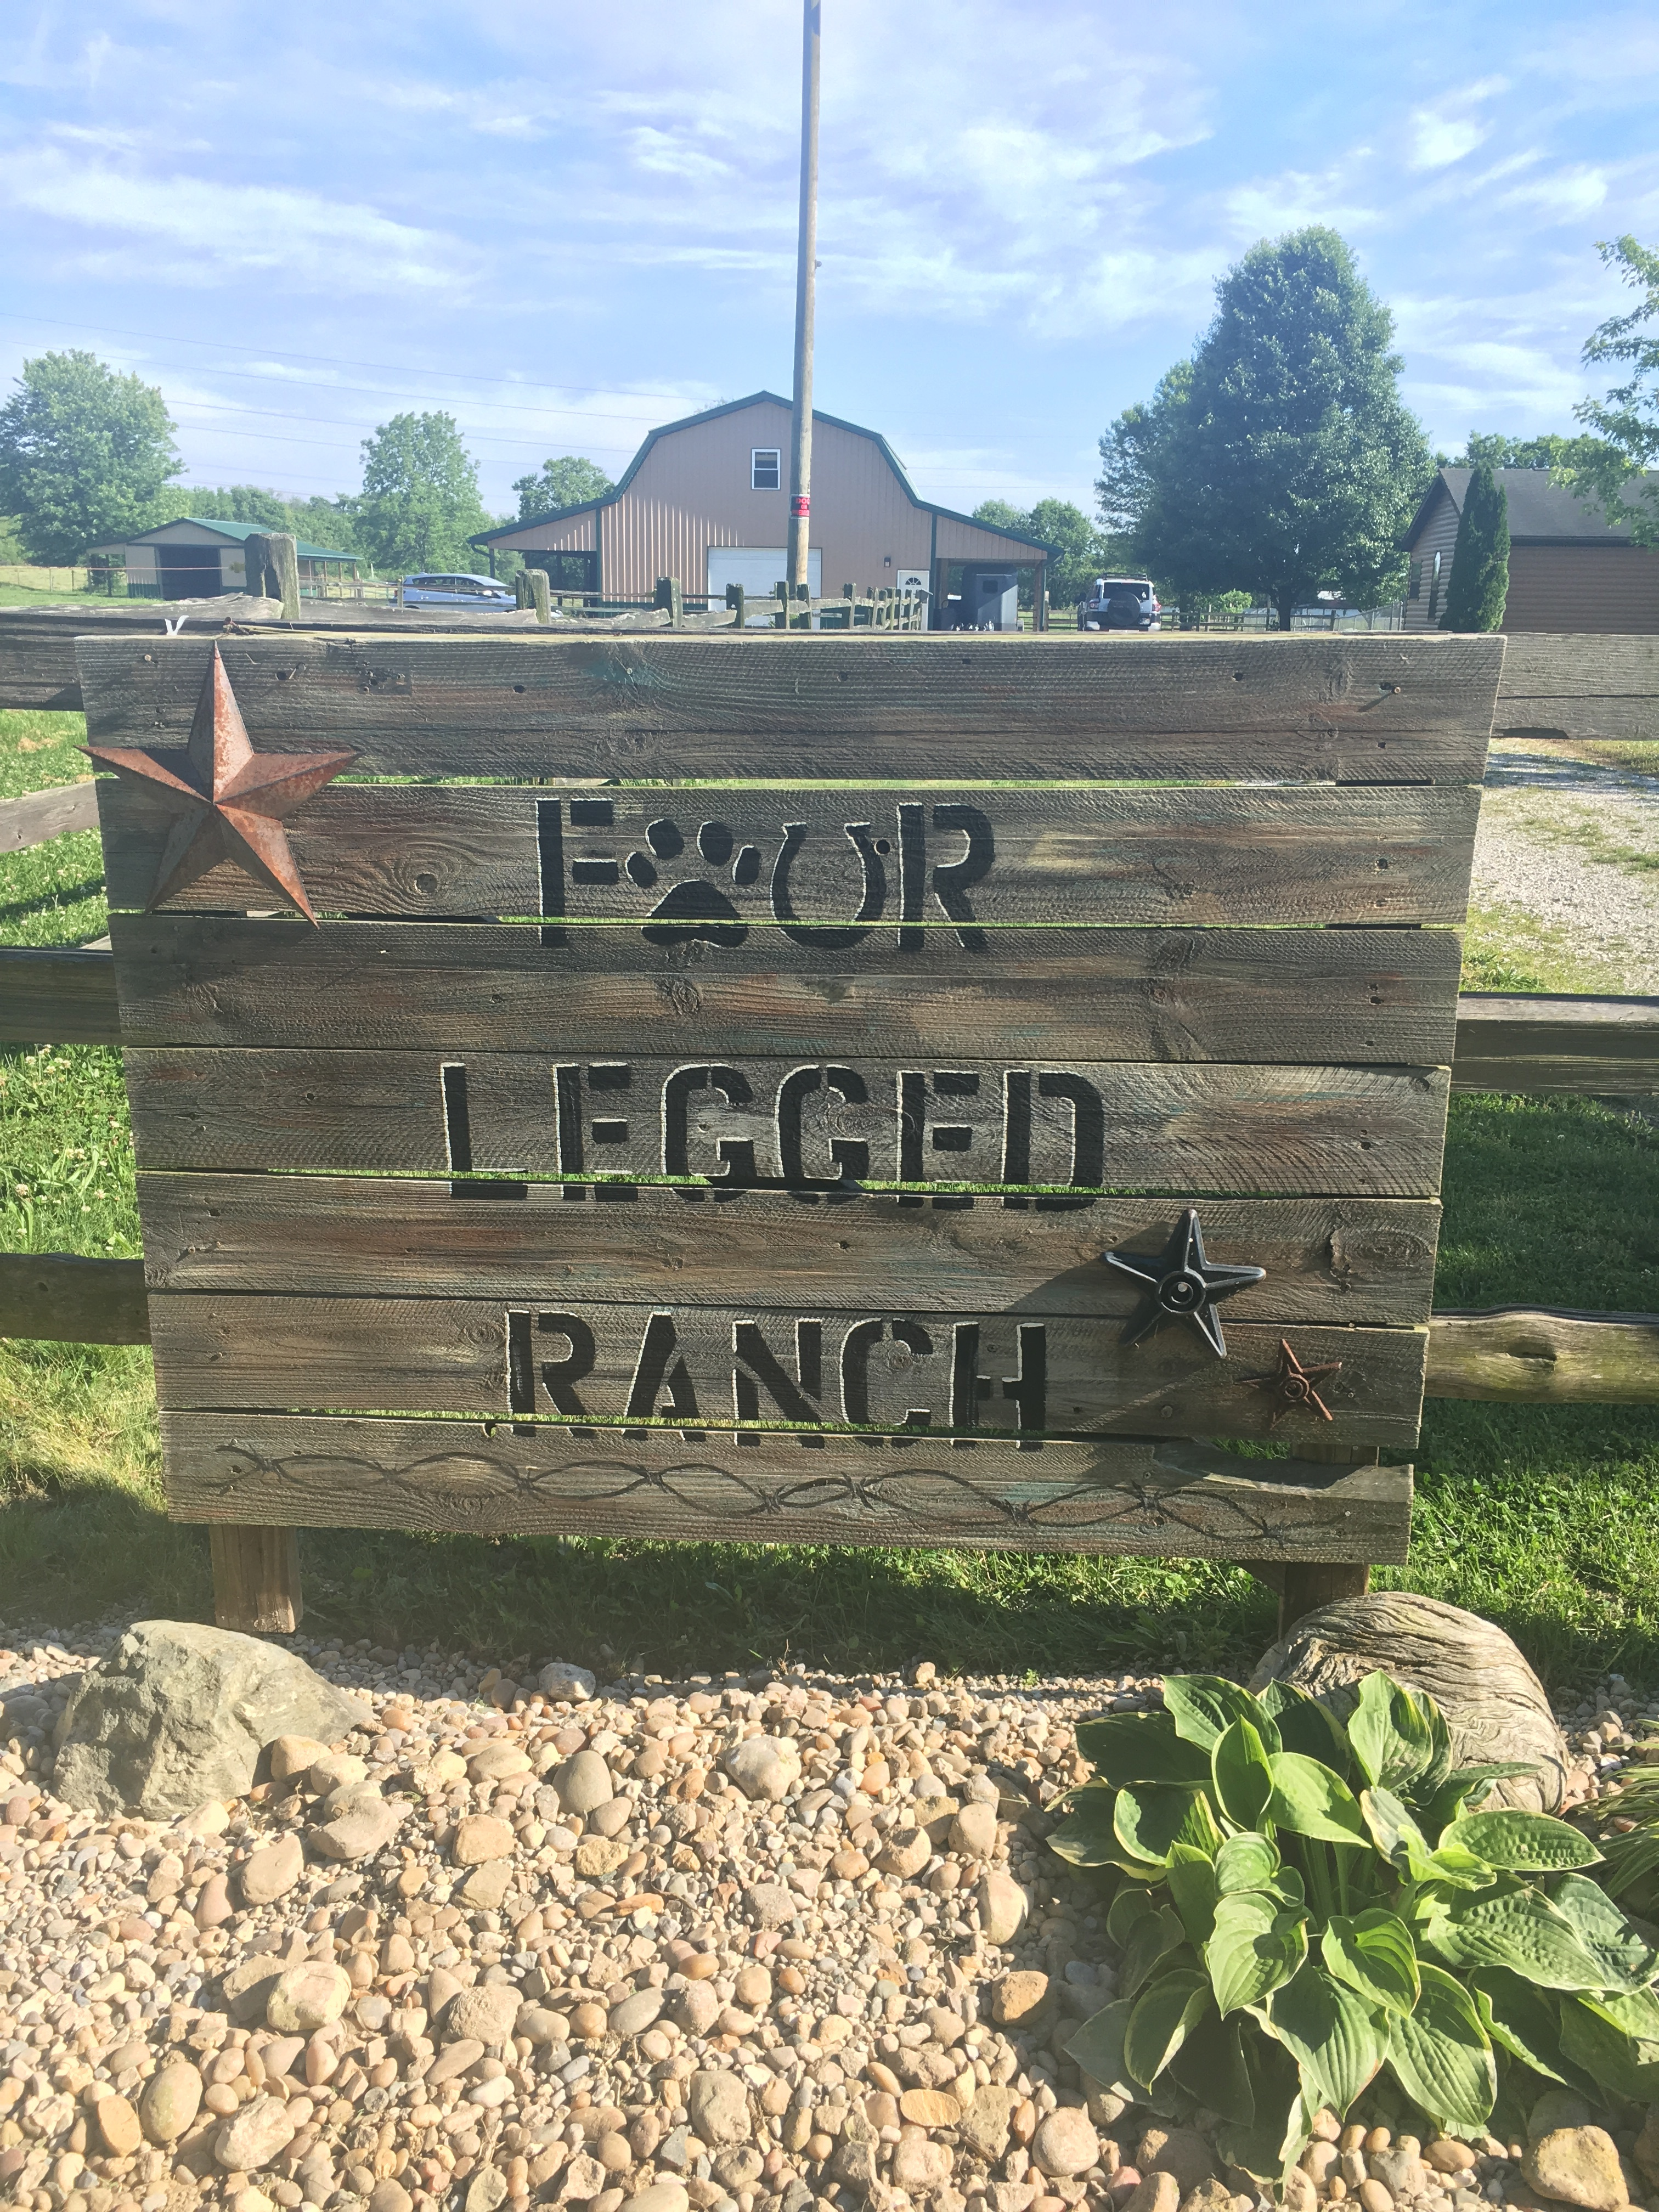 The Four Legged Ranch